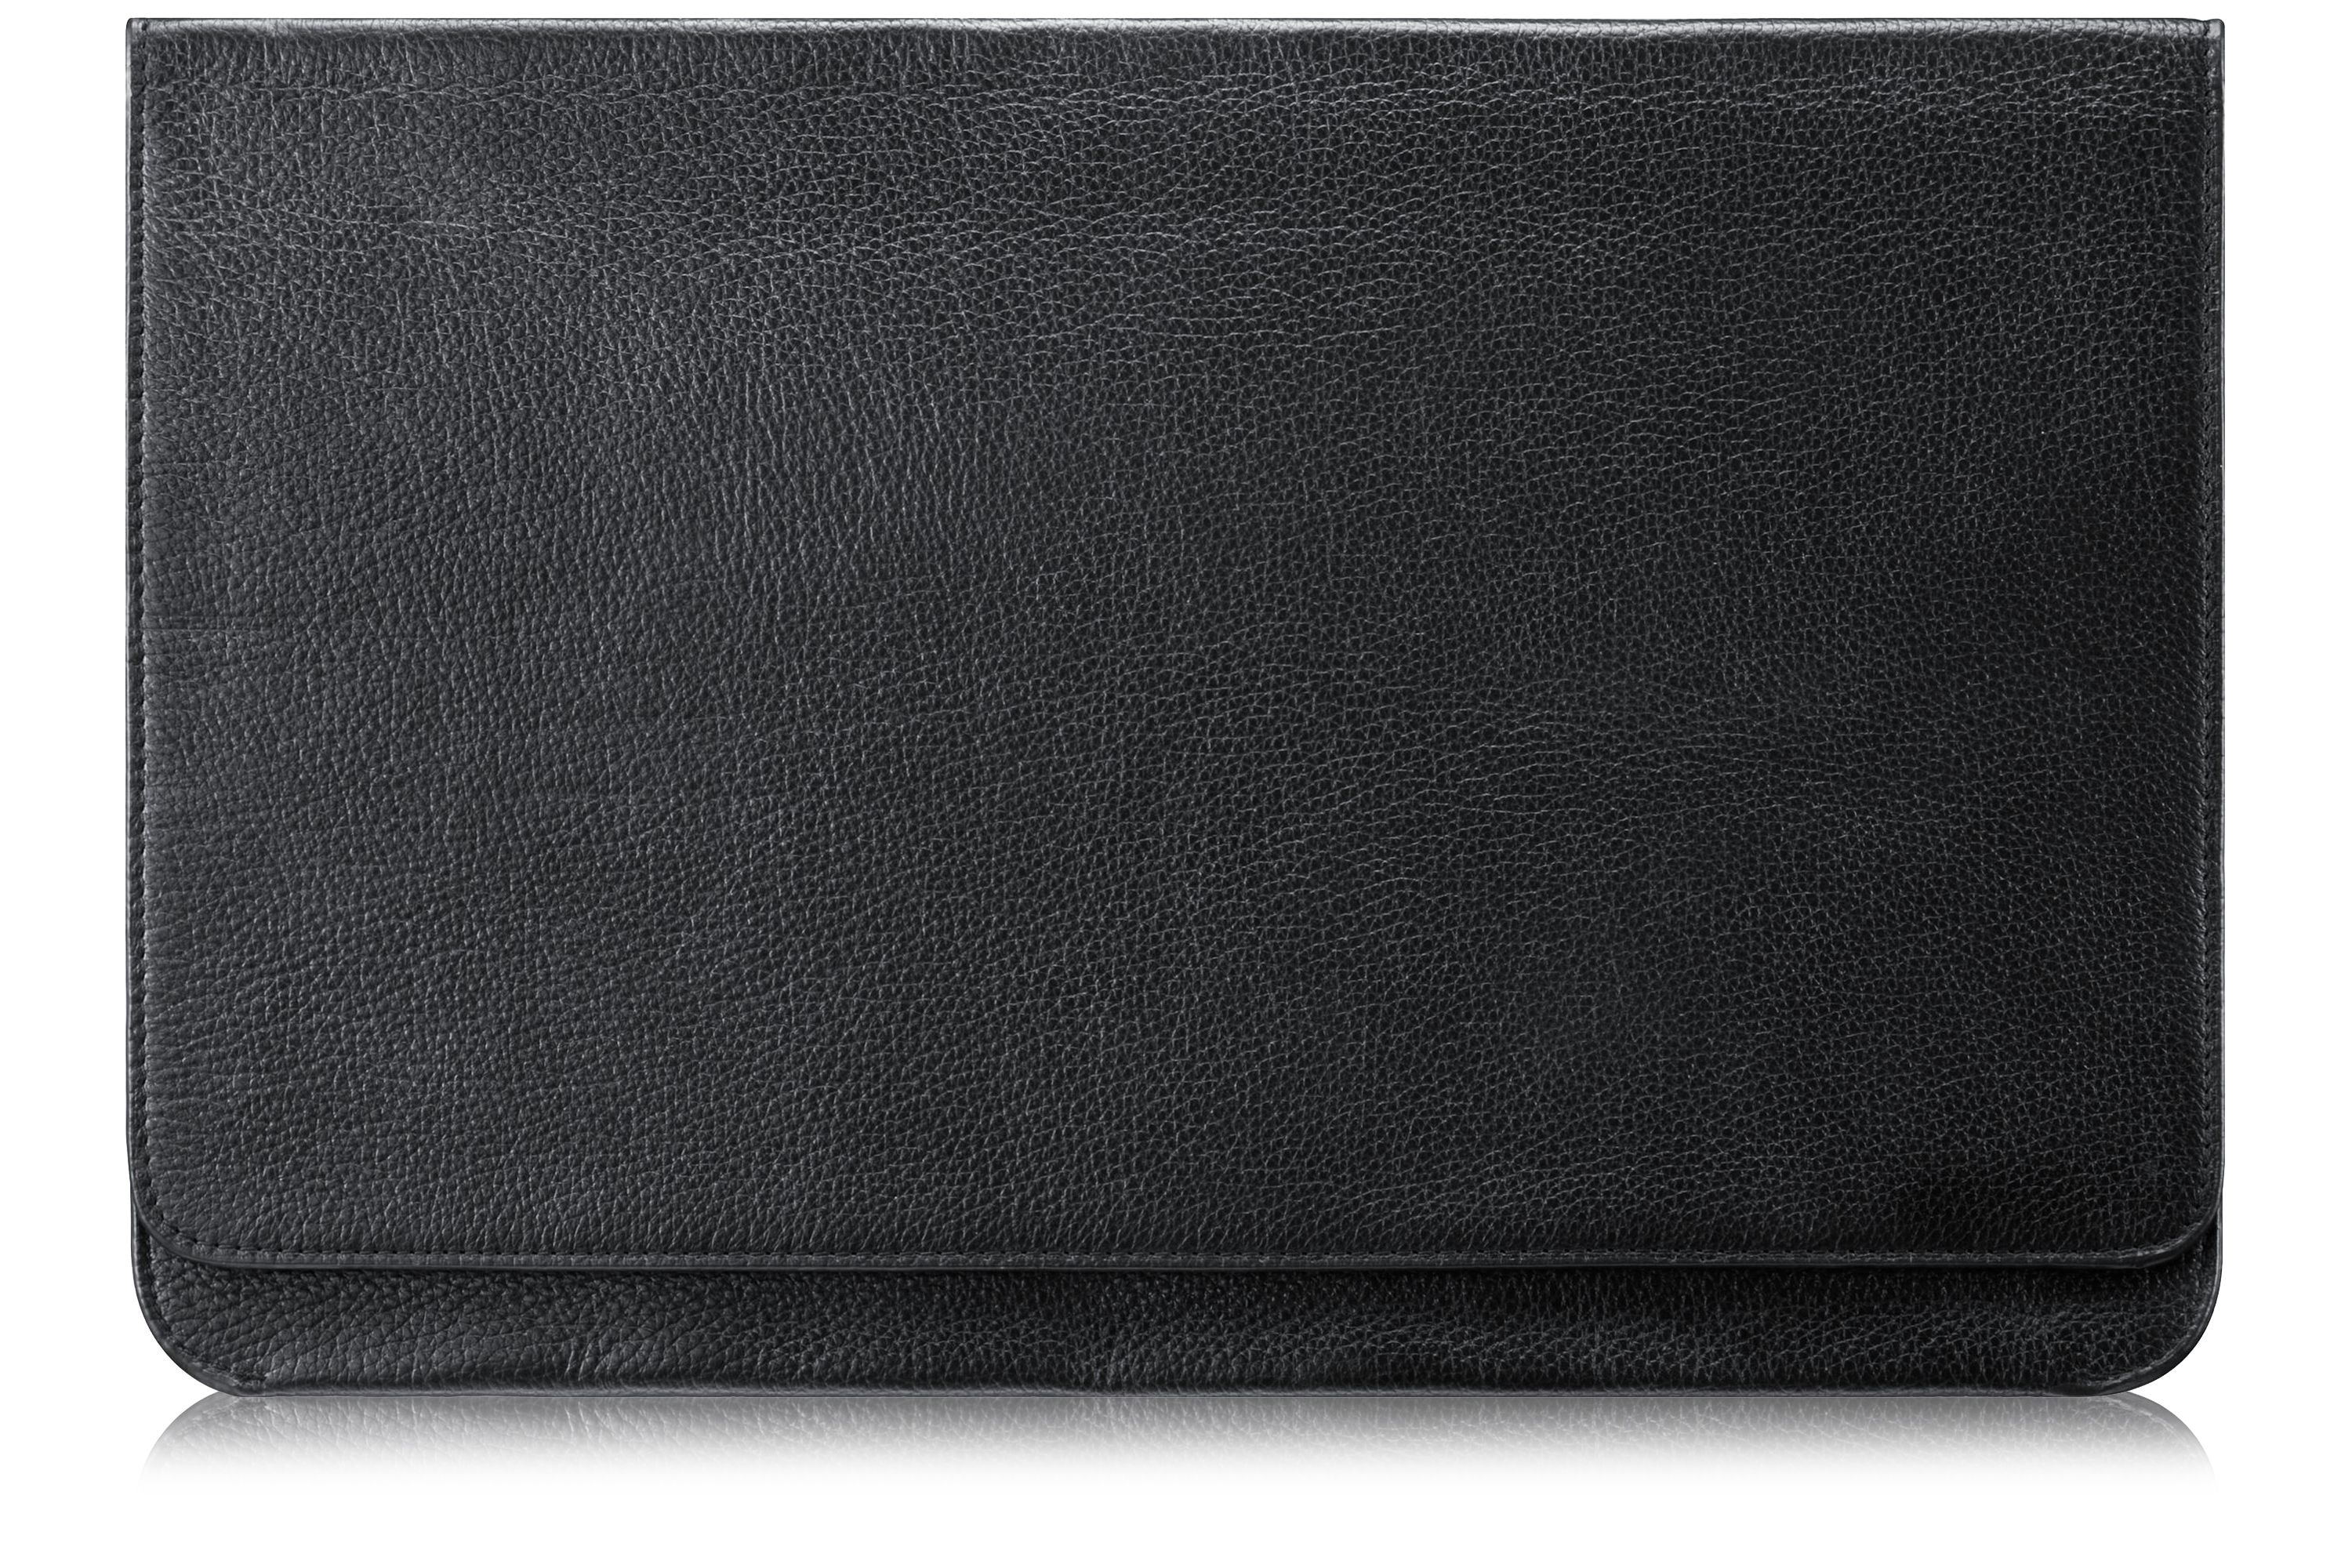 Mineral Ash Black Leather Notebook Carry Case